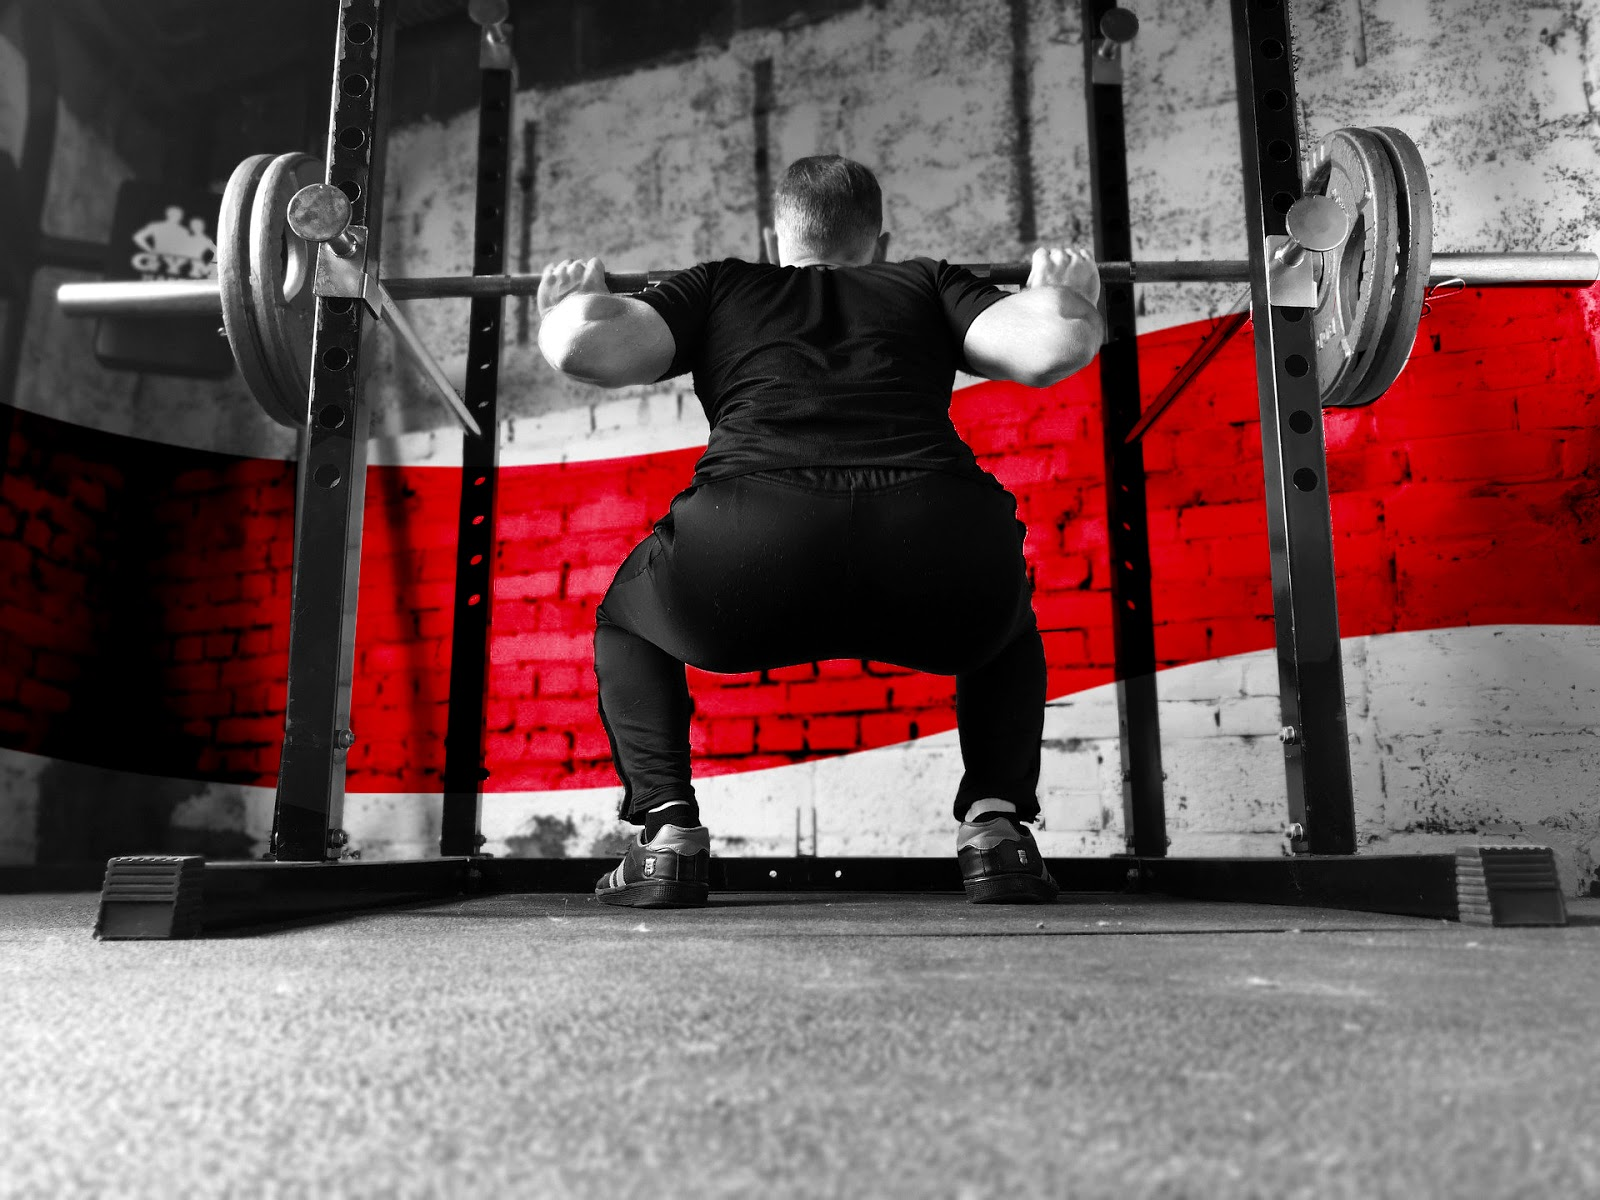 Image of weightlifter in squat position from the back